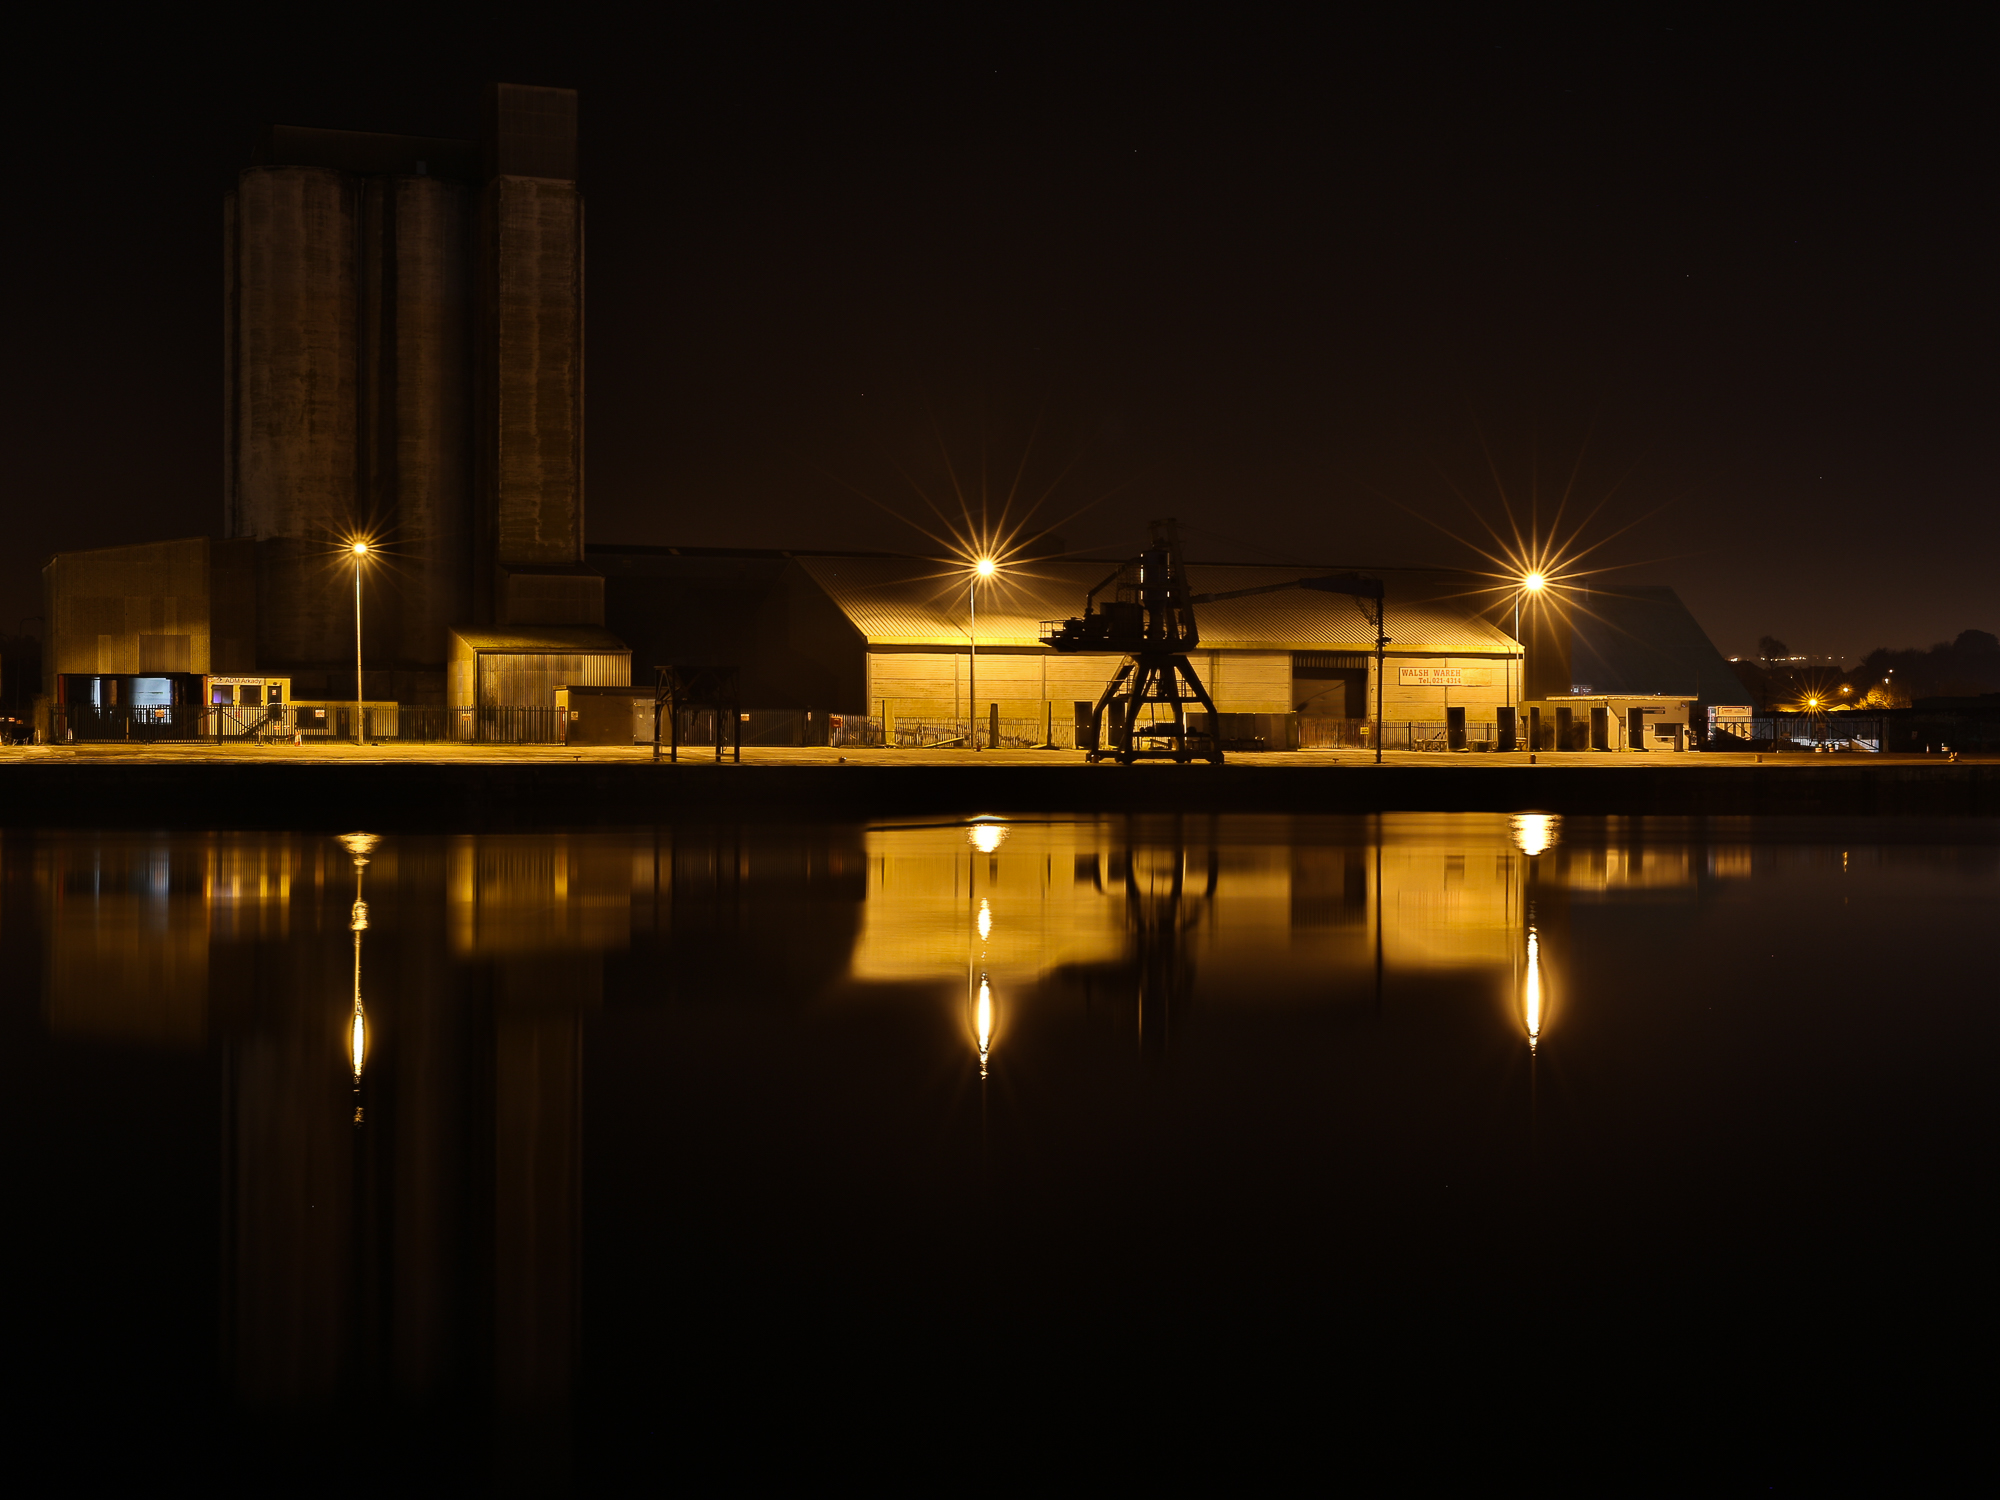 Cork docks, silent at still in the mid of night